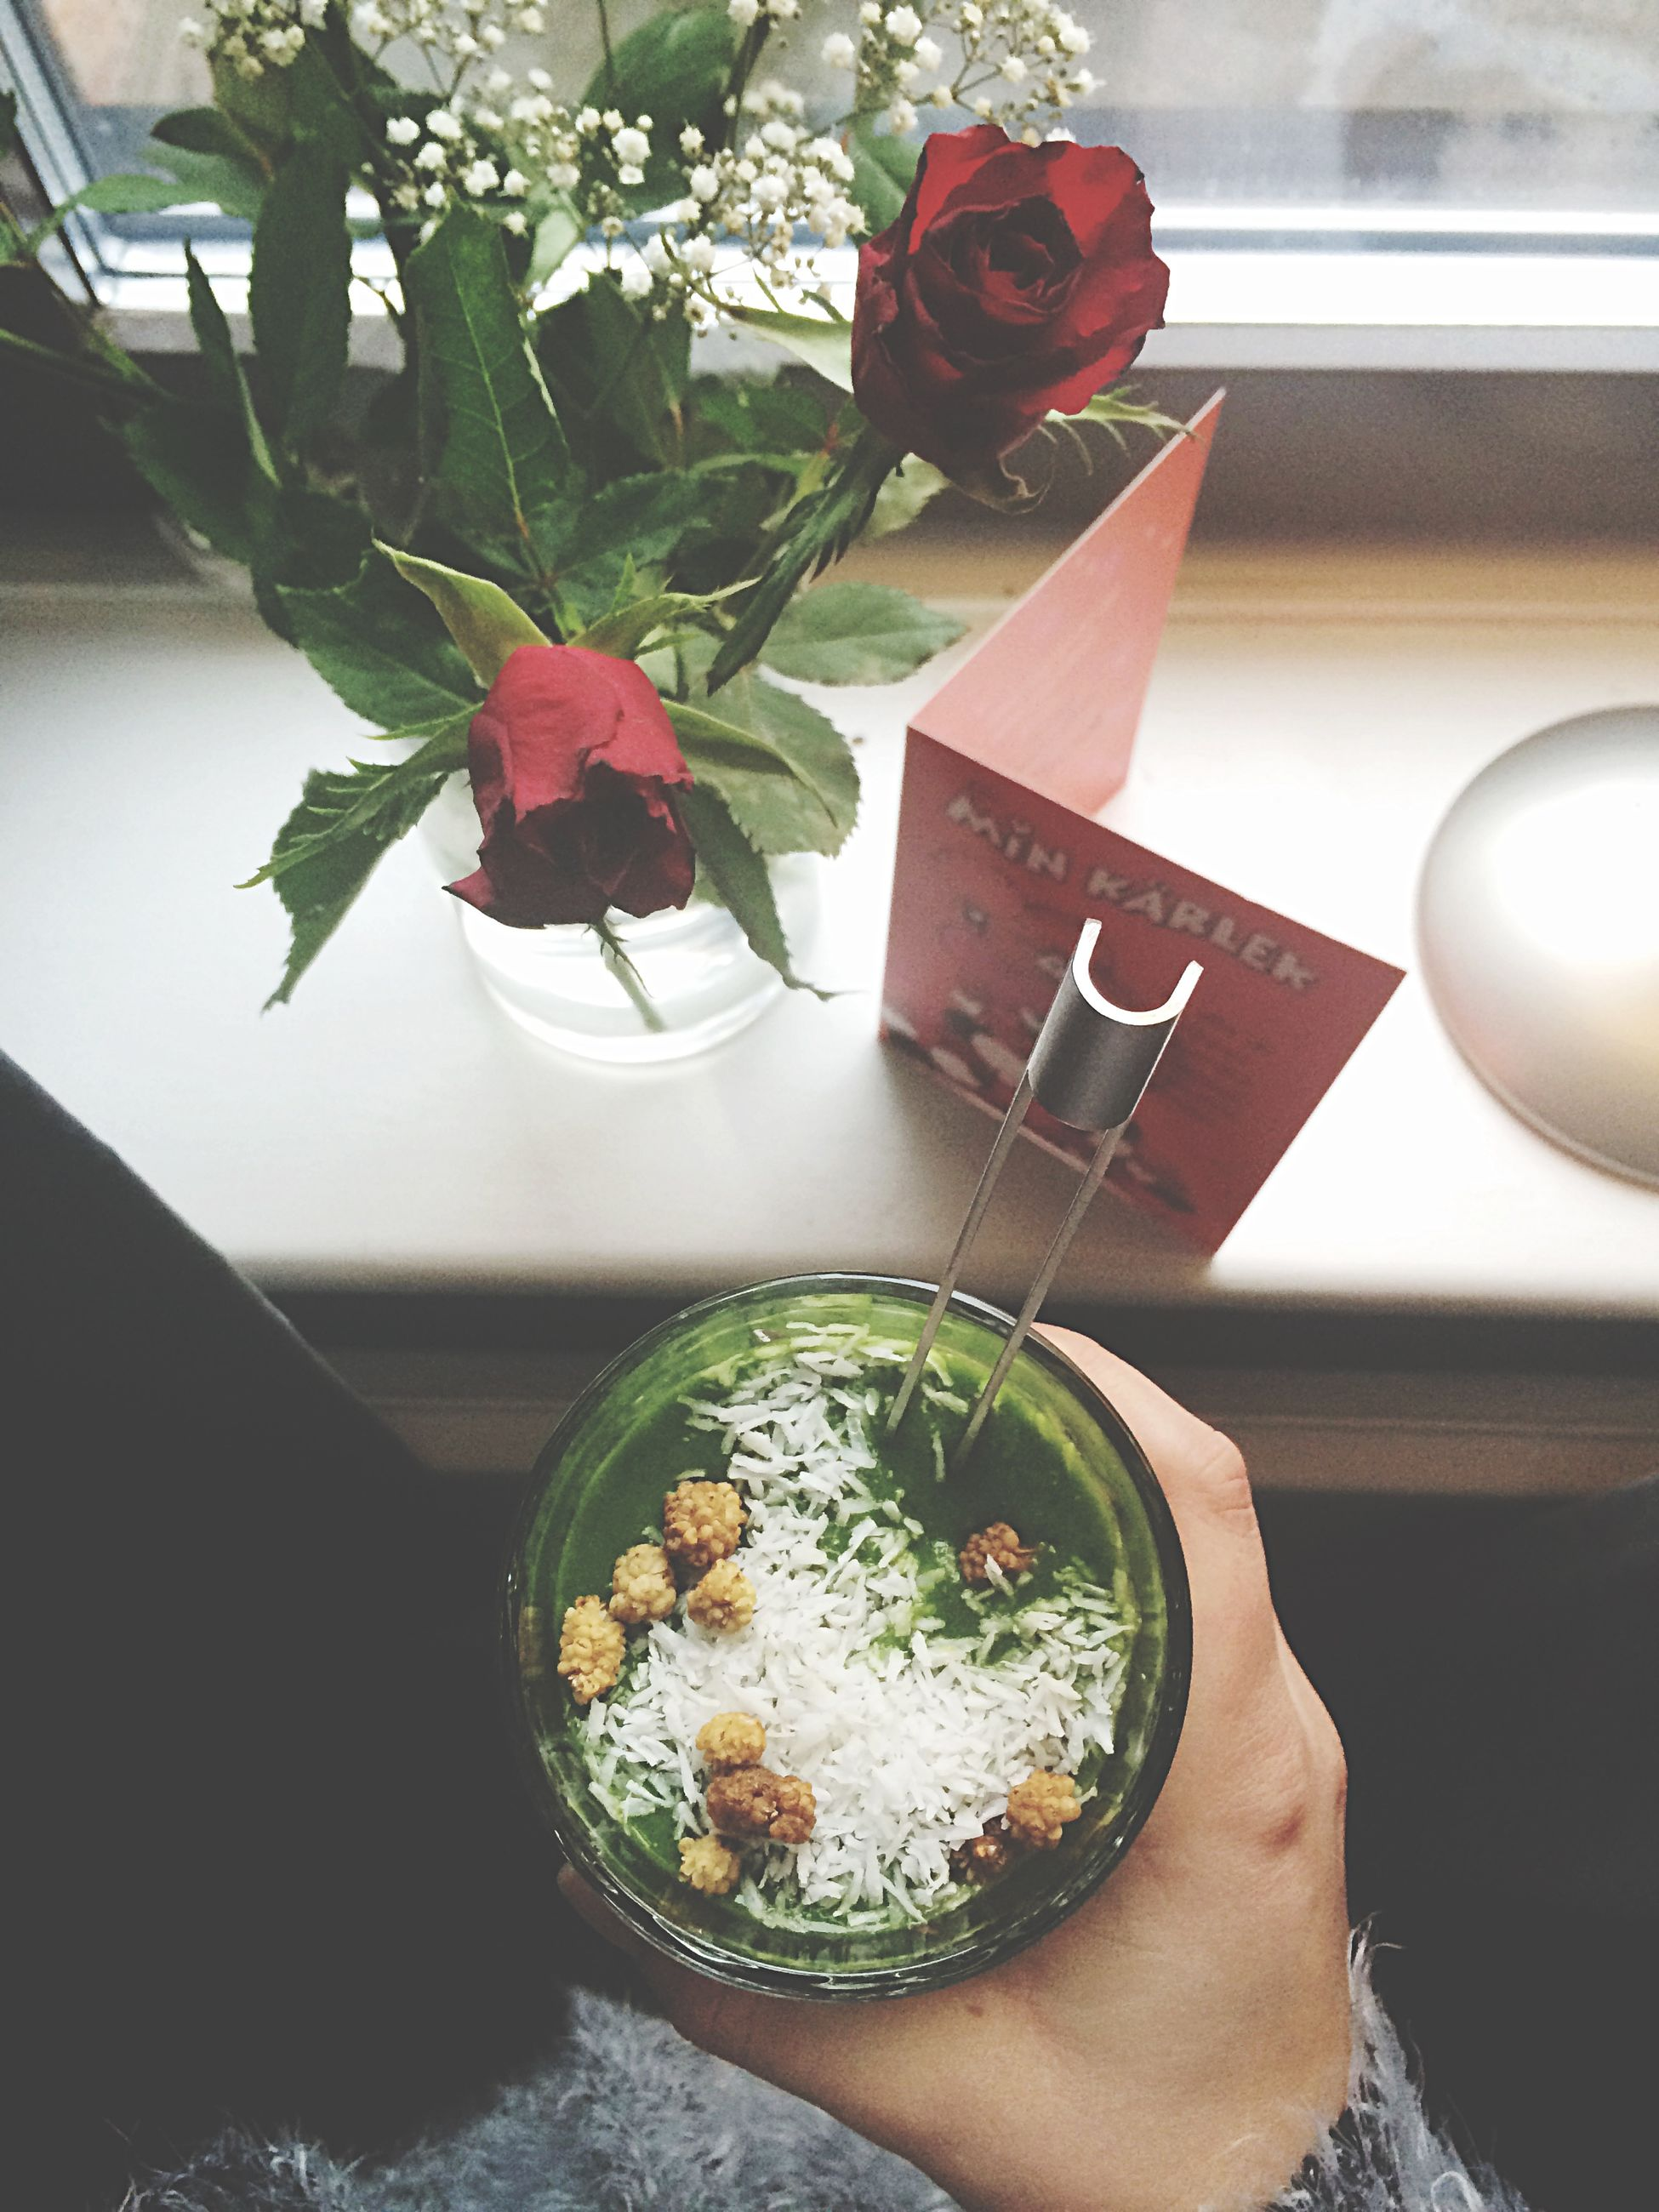 indoors, table, flower, vase, decoration, home interior, freshness, still life, glass - material, high angle view, potted plant, plate, plant, rose - flower, close-up, food and drink, no people, reflection, leaf, transparent